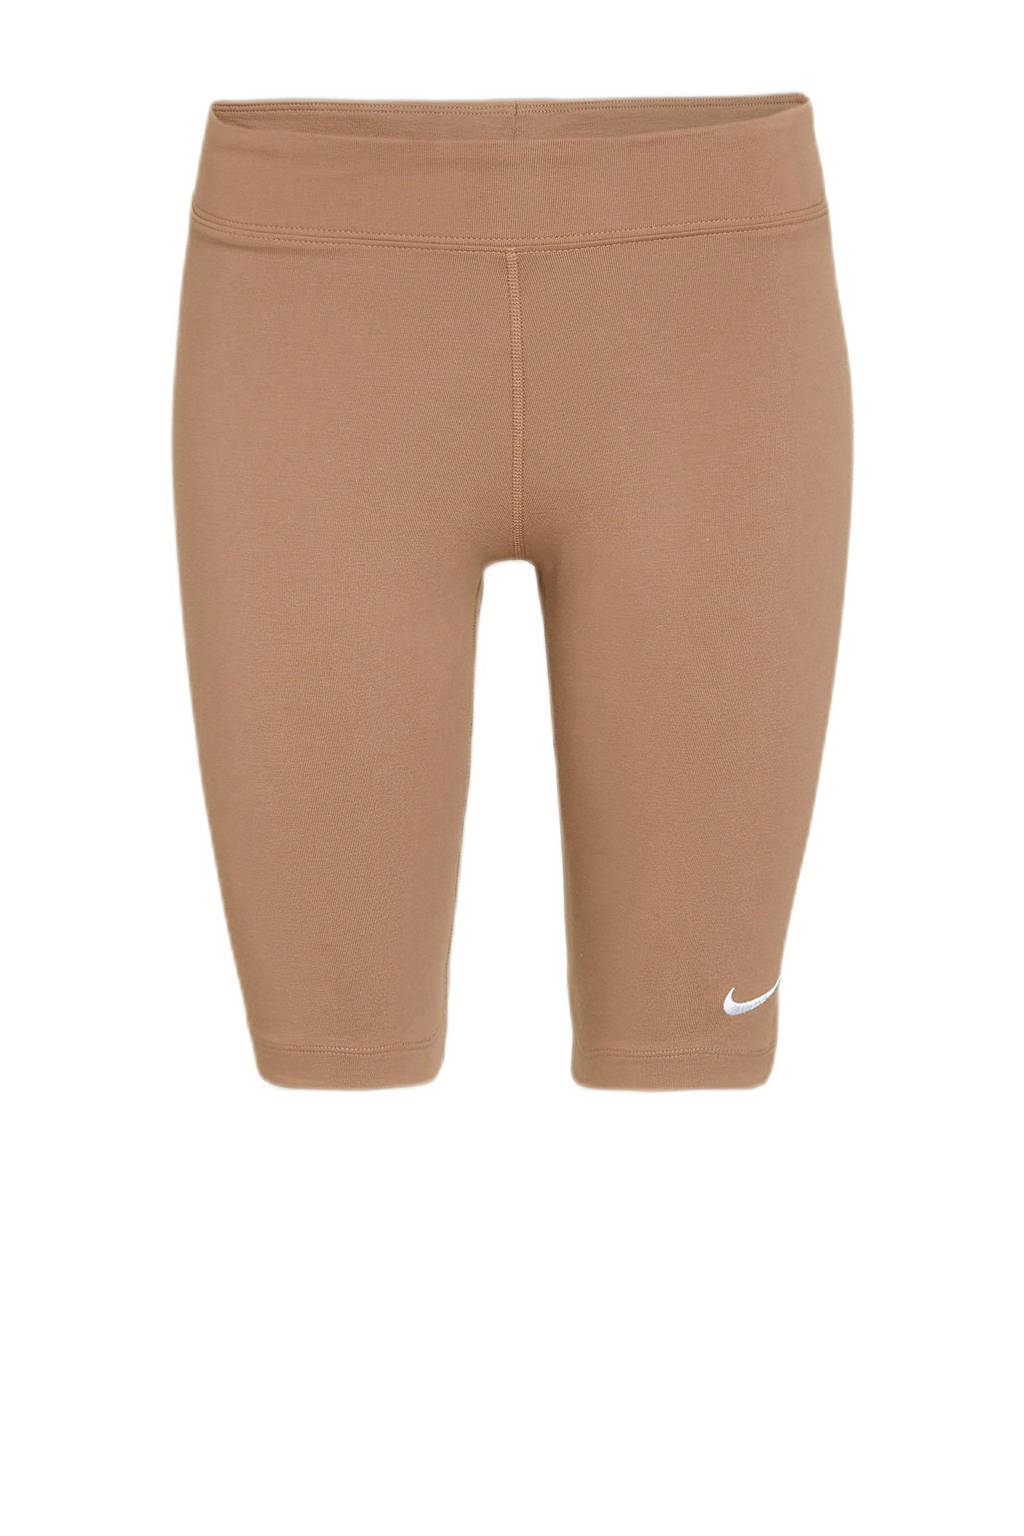 Nike cycling short bruin/wit, Bruin/wit